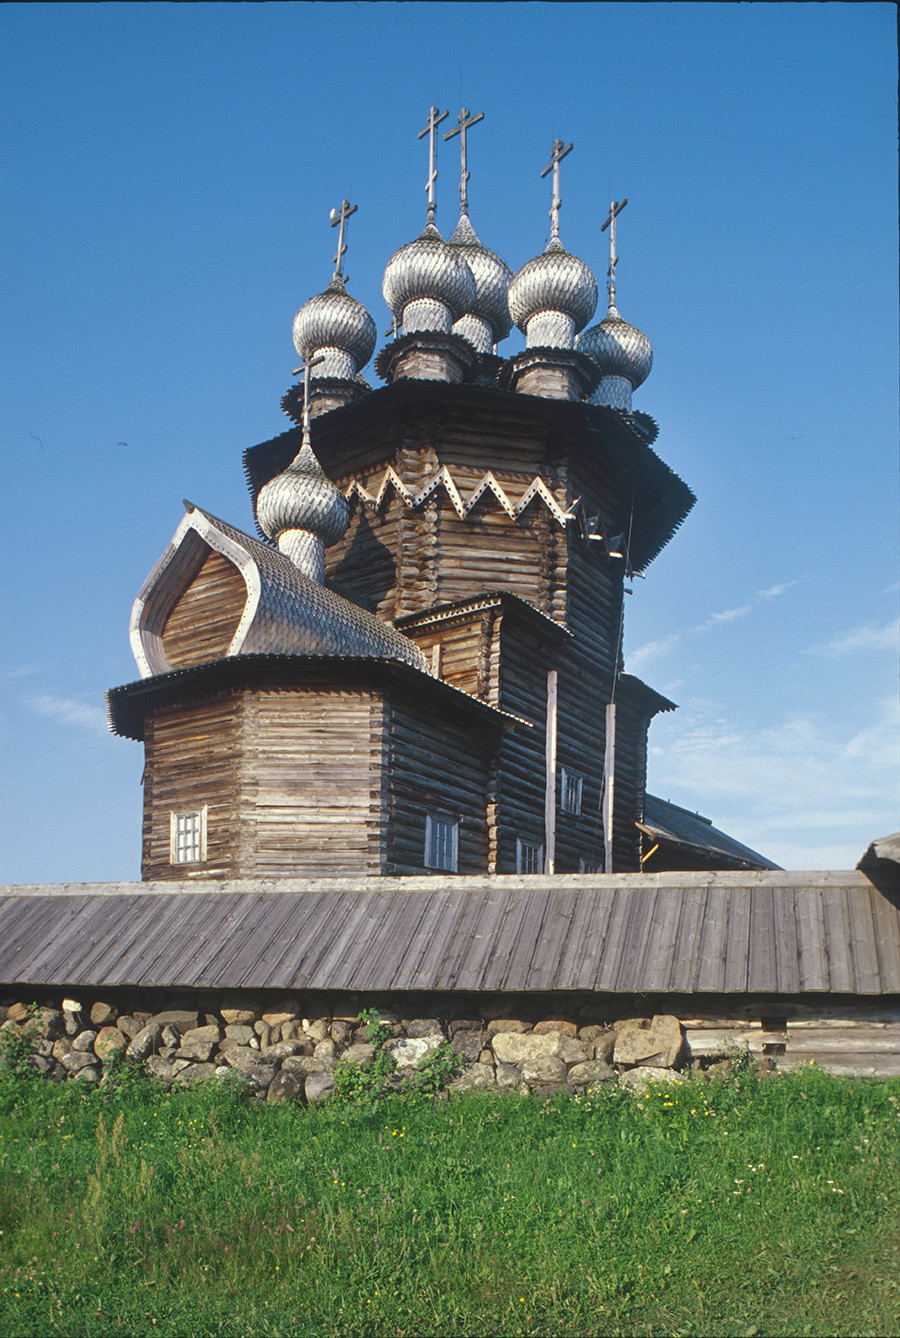 Church of the Intercession, northeast view. July 13, 2007